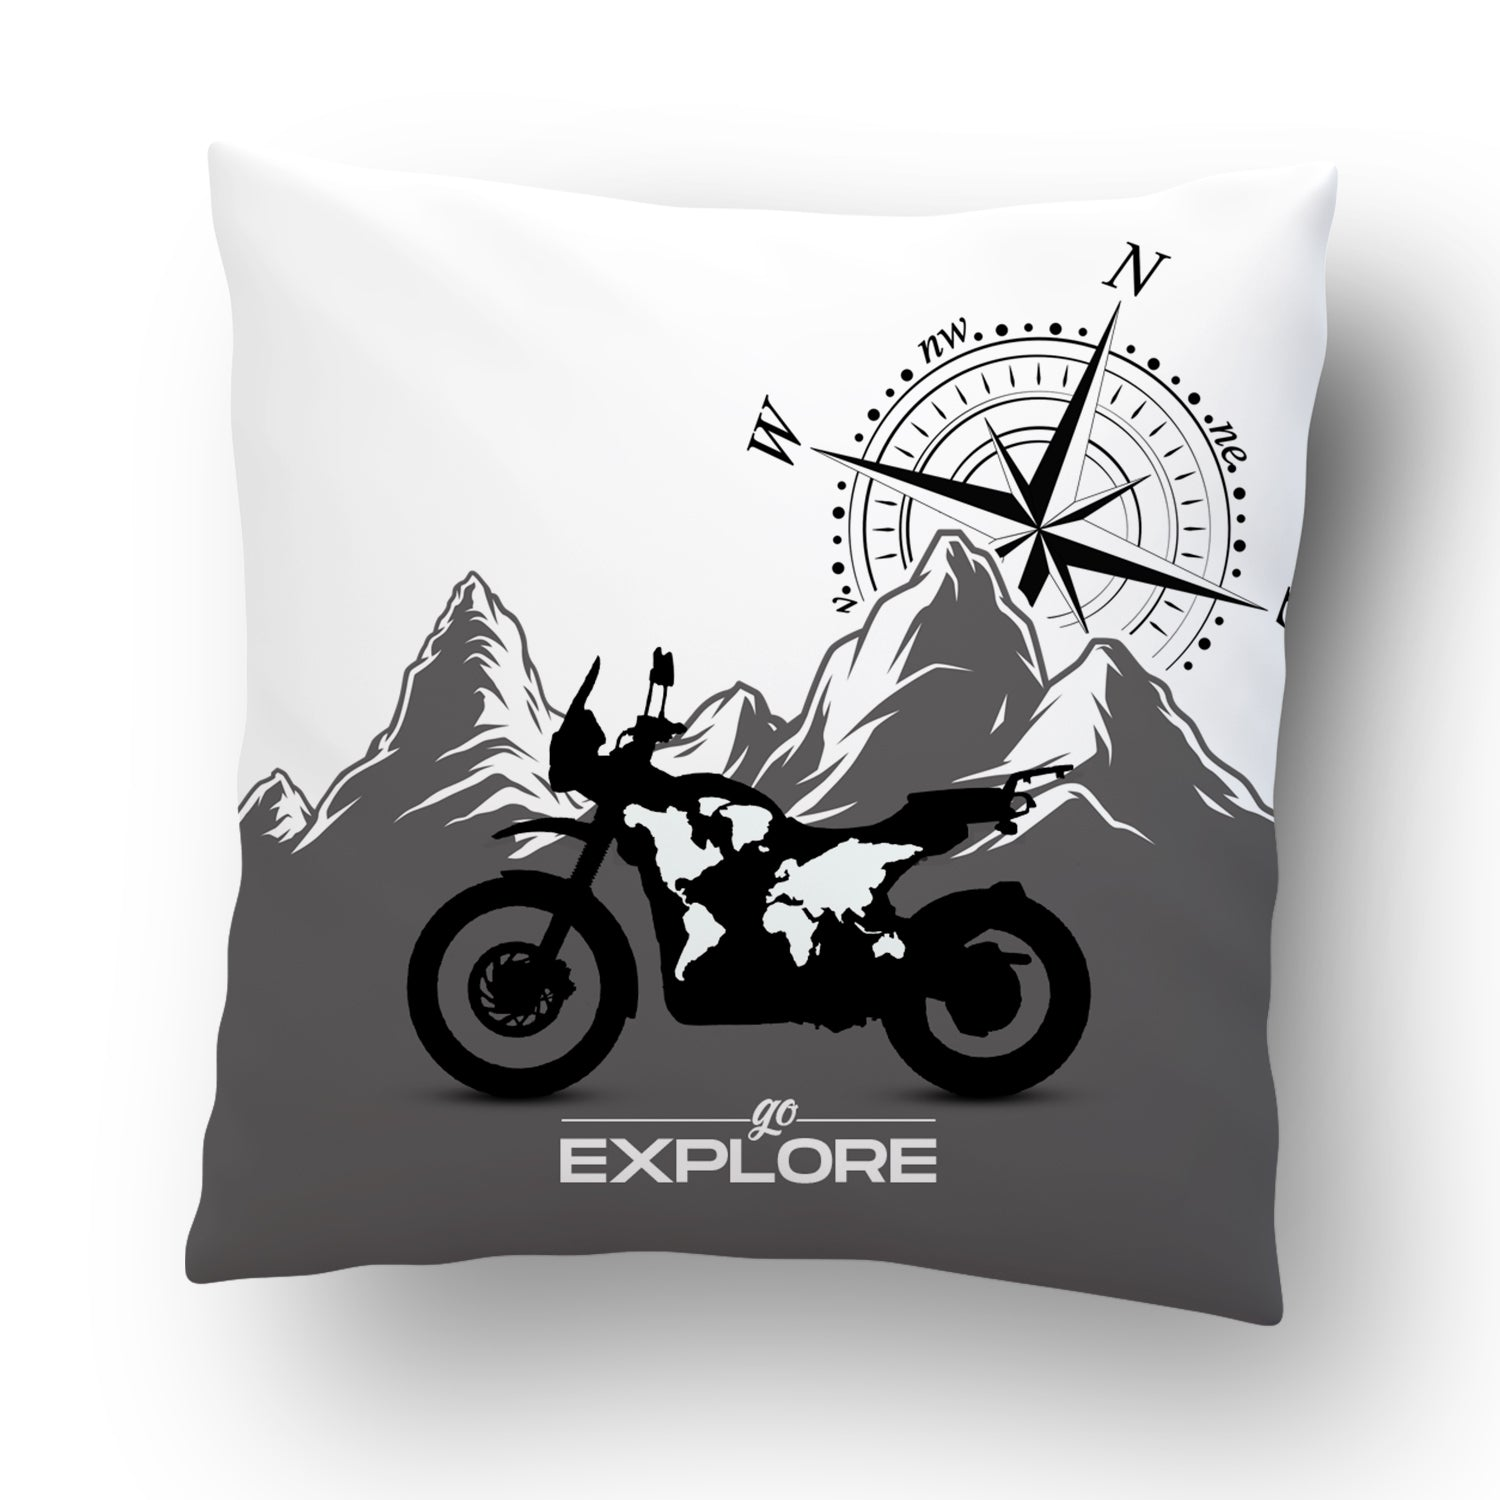 Go Explore Cushion